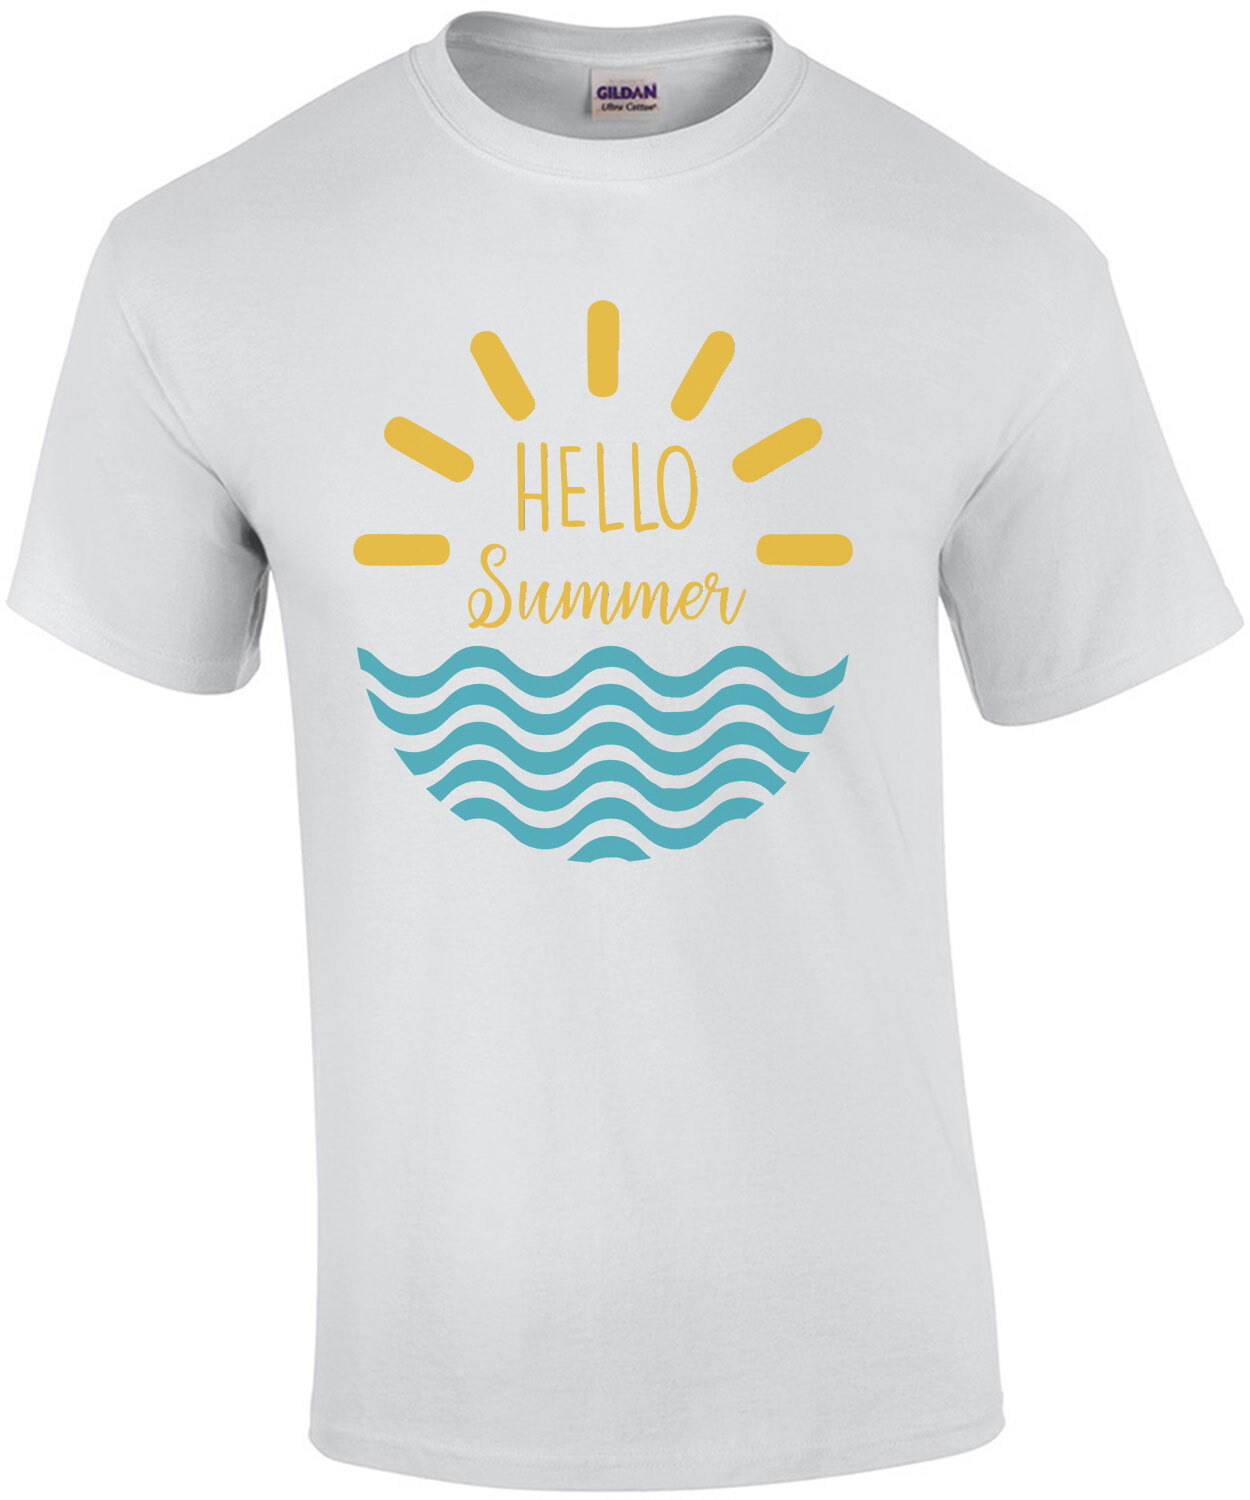 Hello Summer - T-Shirt